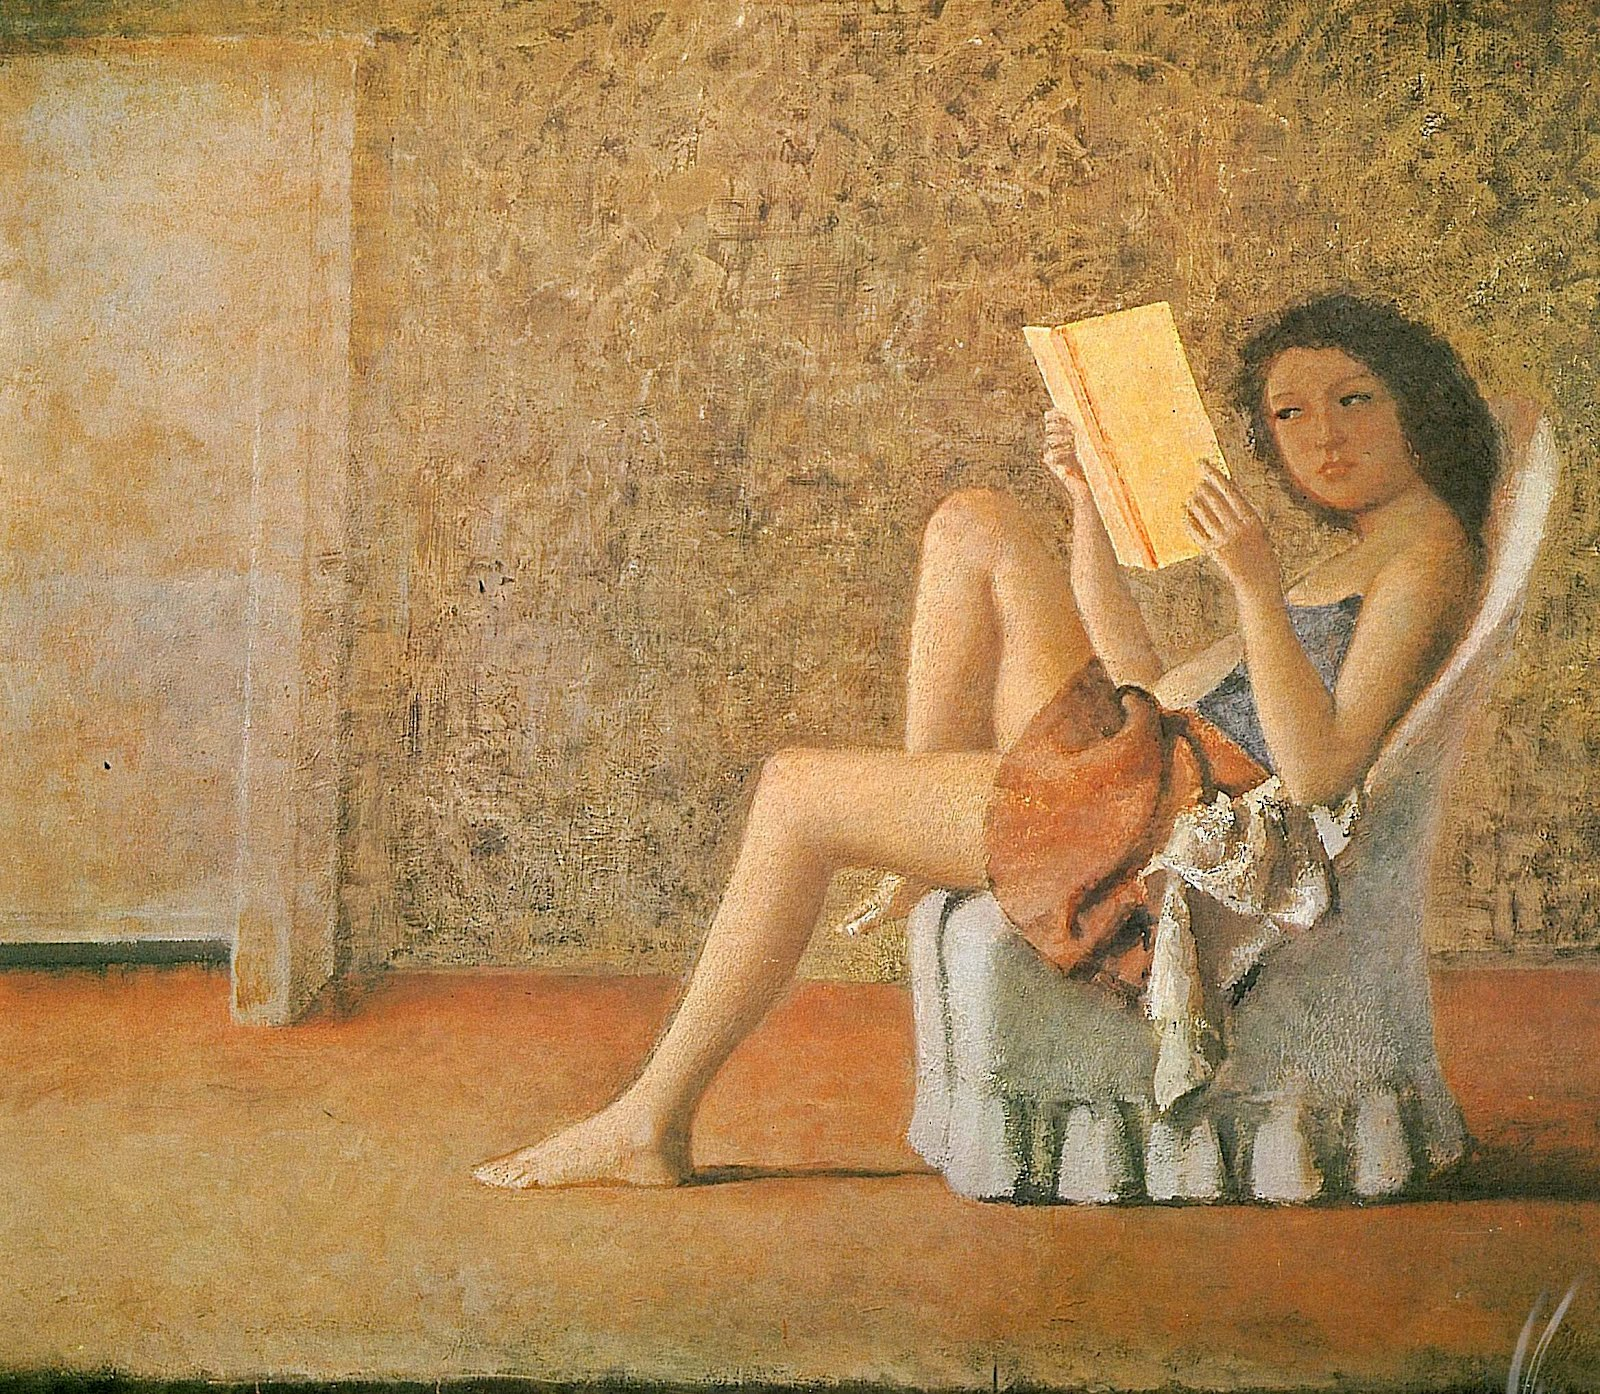 katia-reading-1974